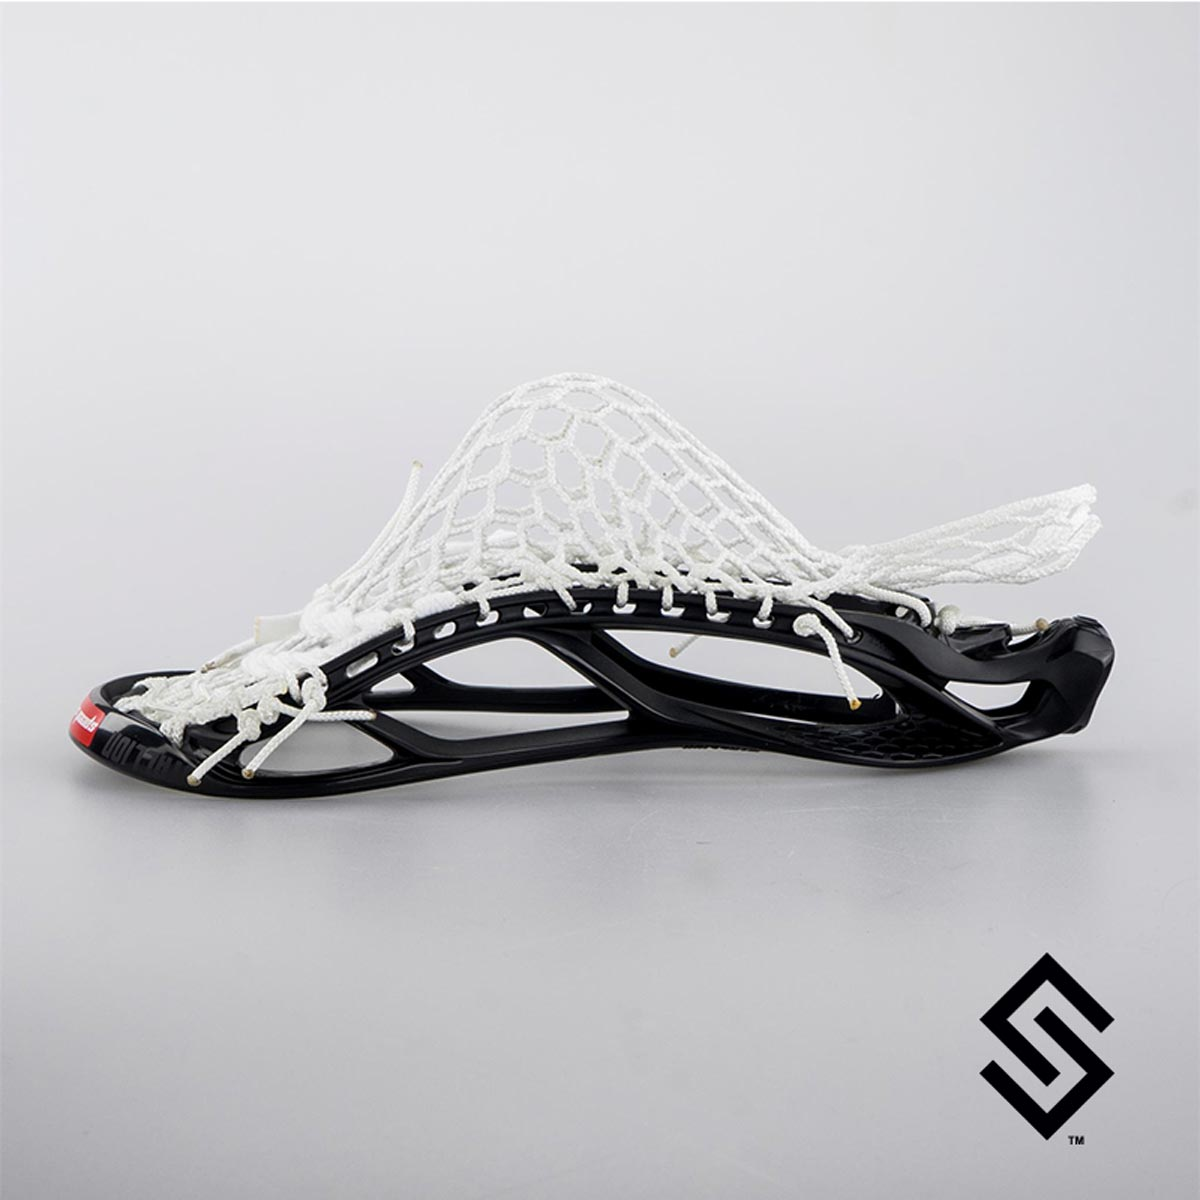 STX Stallion U 700 Lacrosse Head PRESTRUNG with PRO PLUS Memory Mesh POCKET